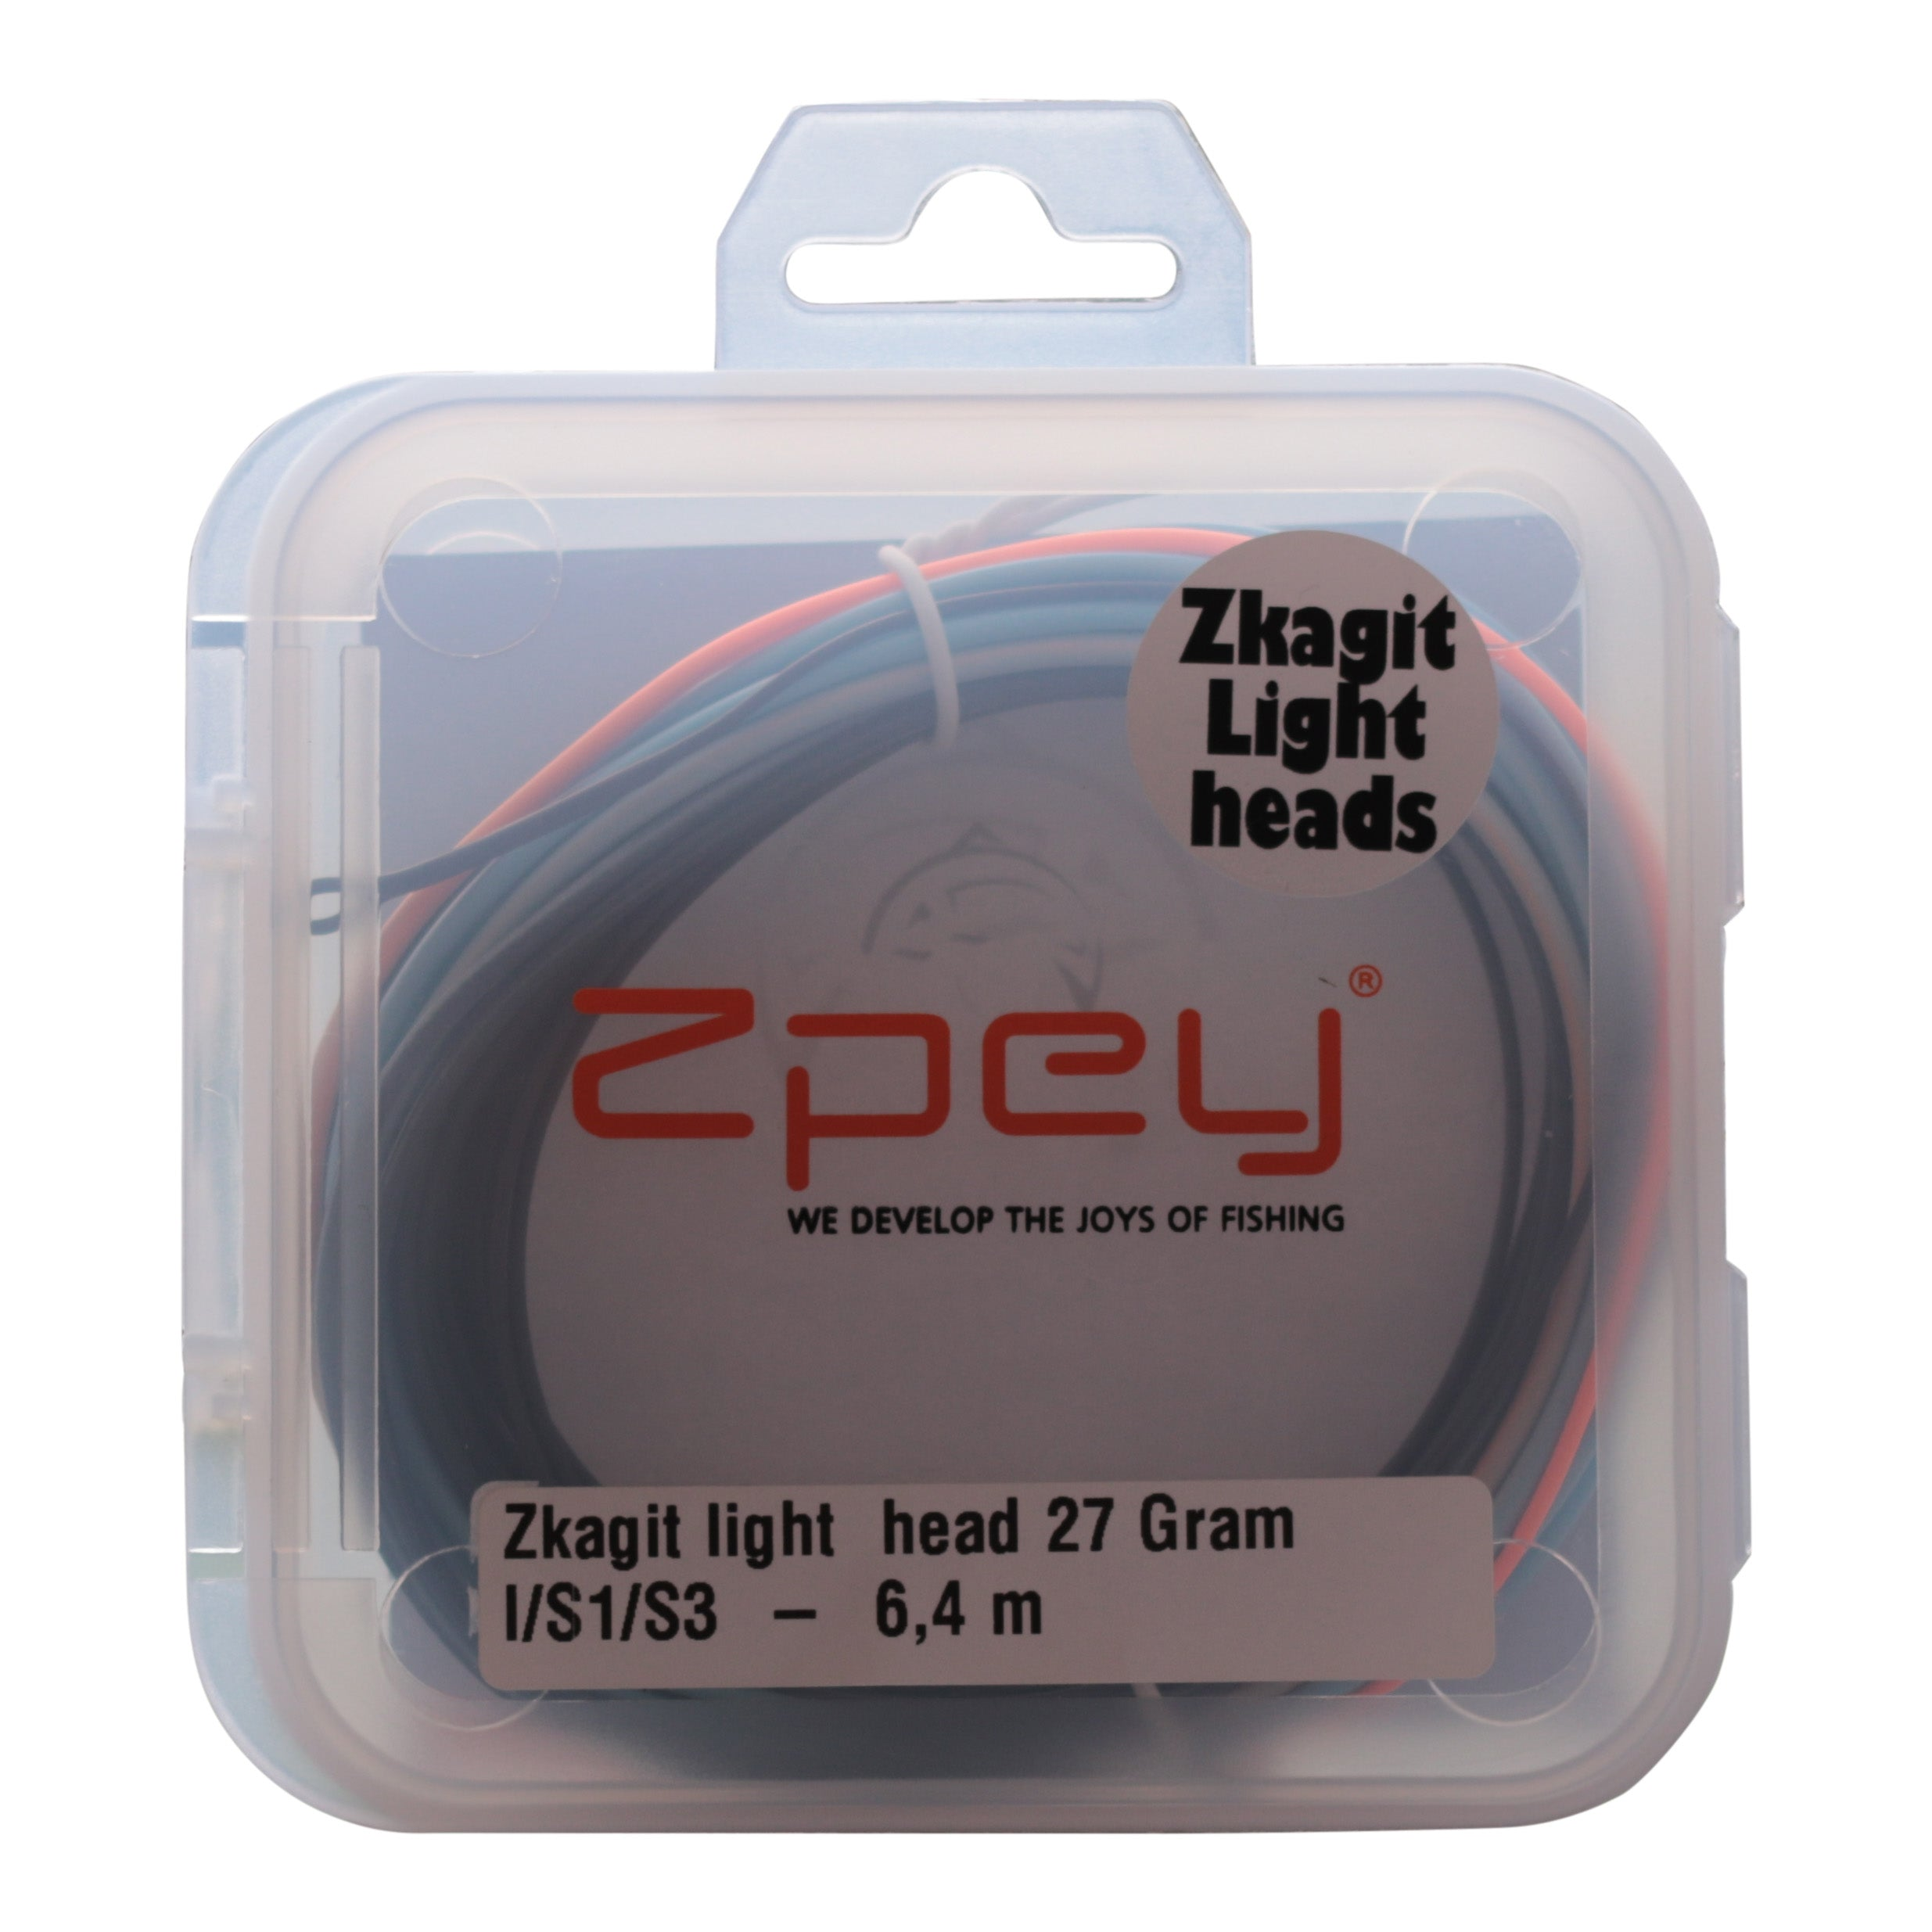 DH - Zkagit Light Zhooting head S1-S3